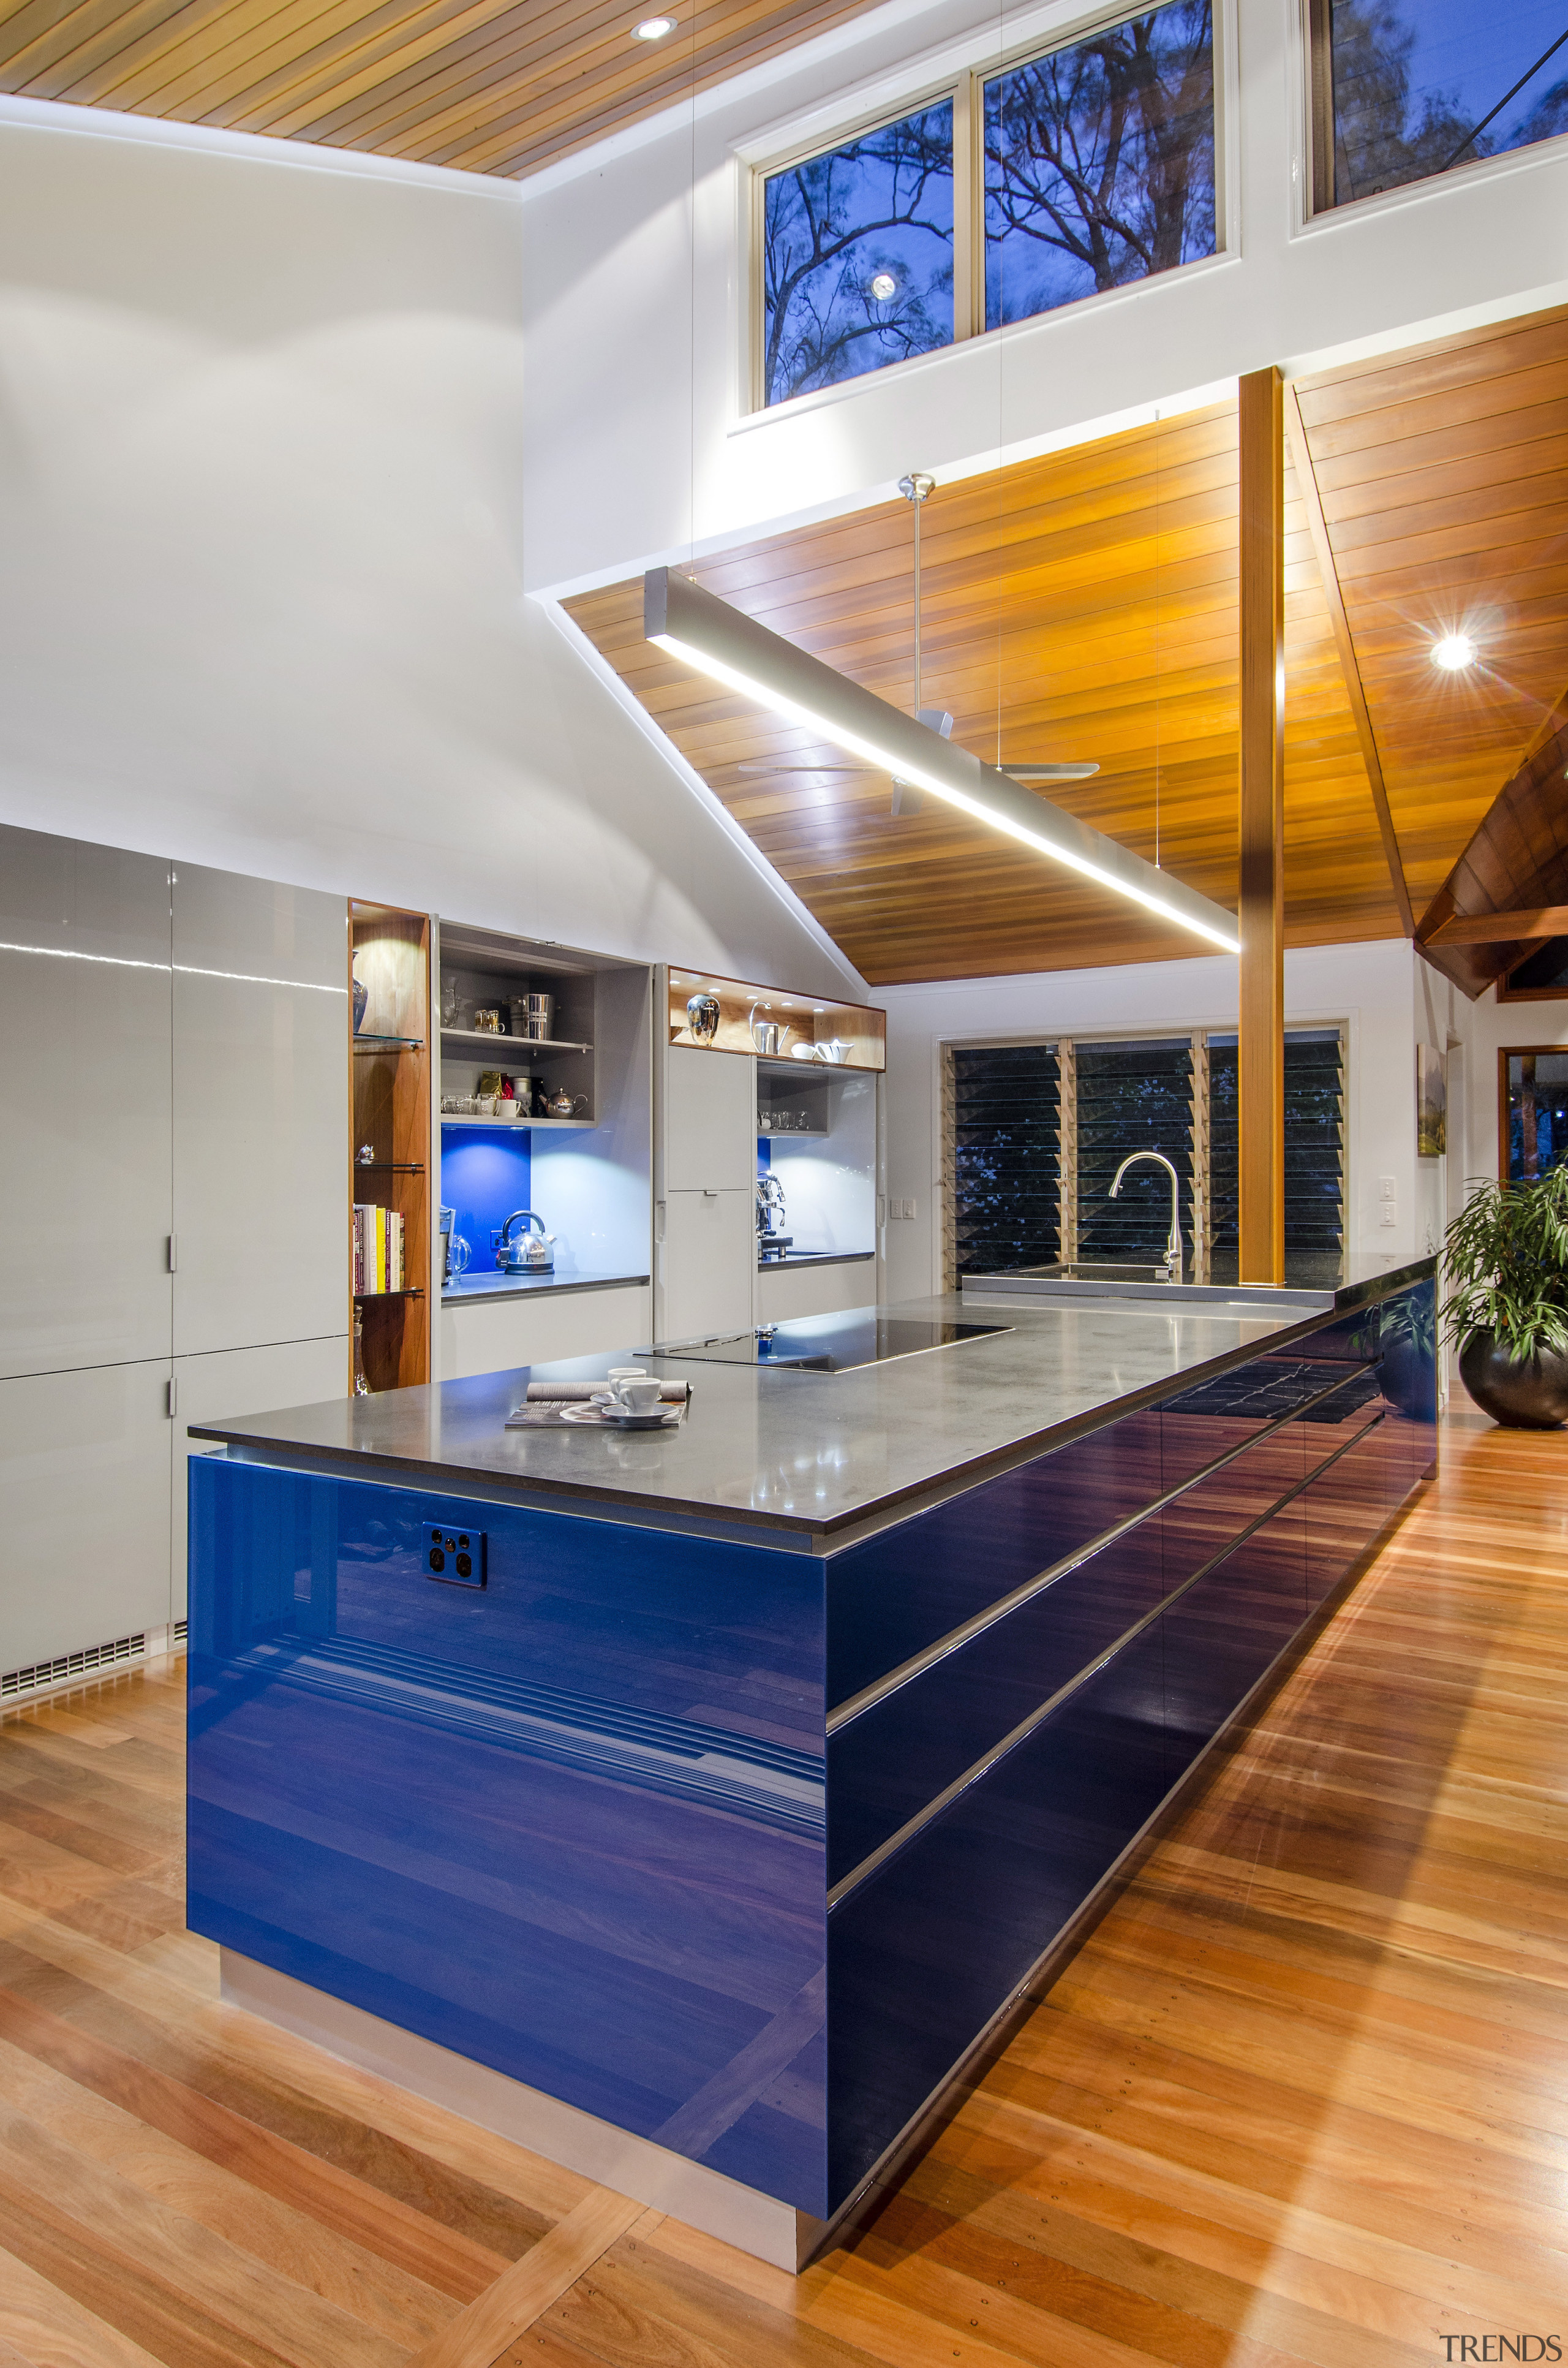 This kitchen was designed by Kim Duffin of architecture, ceiling, countertop, daylighting, floor, hardwood, house, interior design, kitchen, real estate, wood, gray